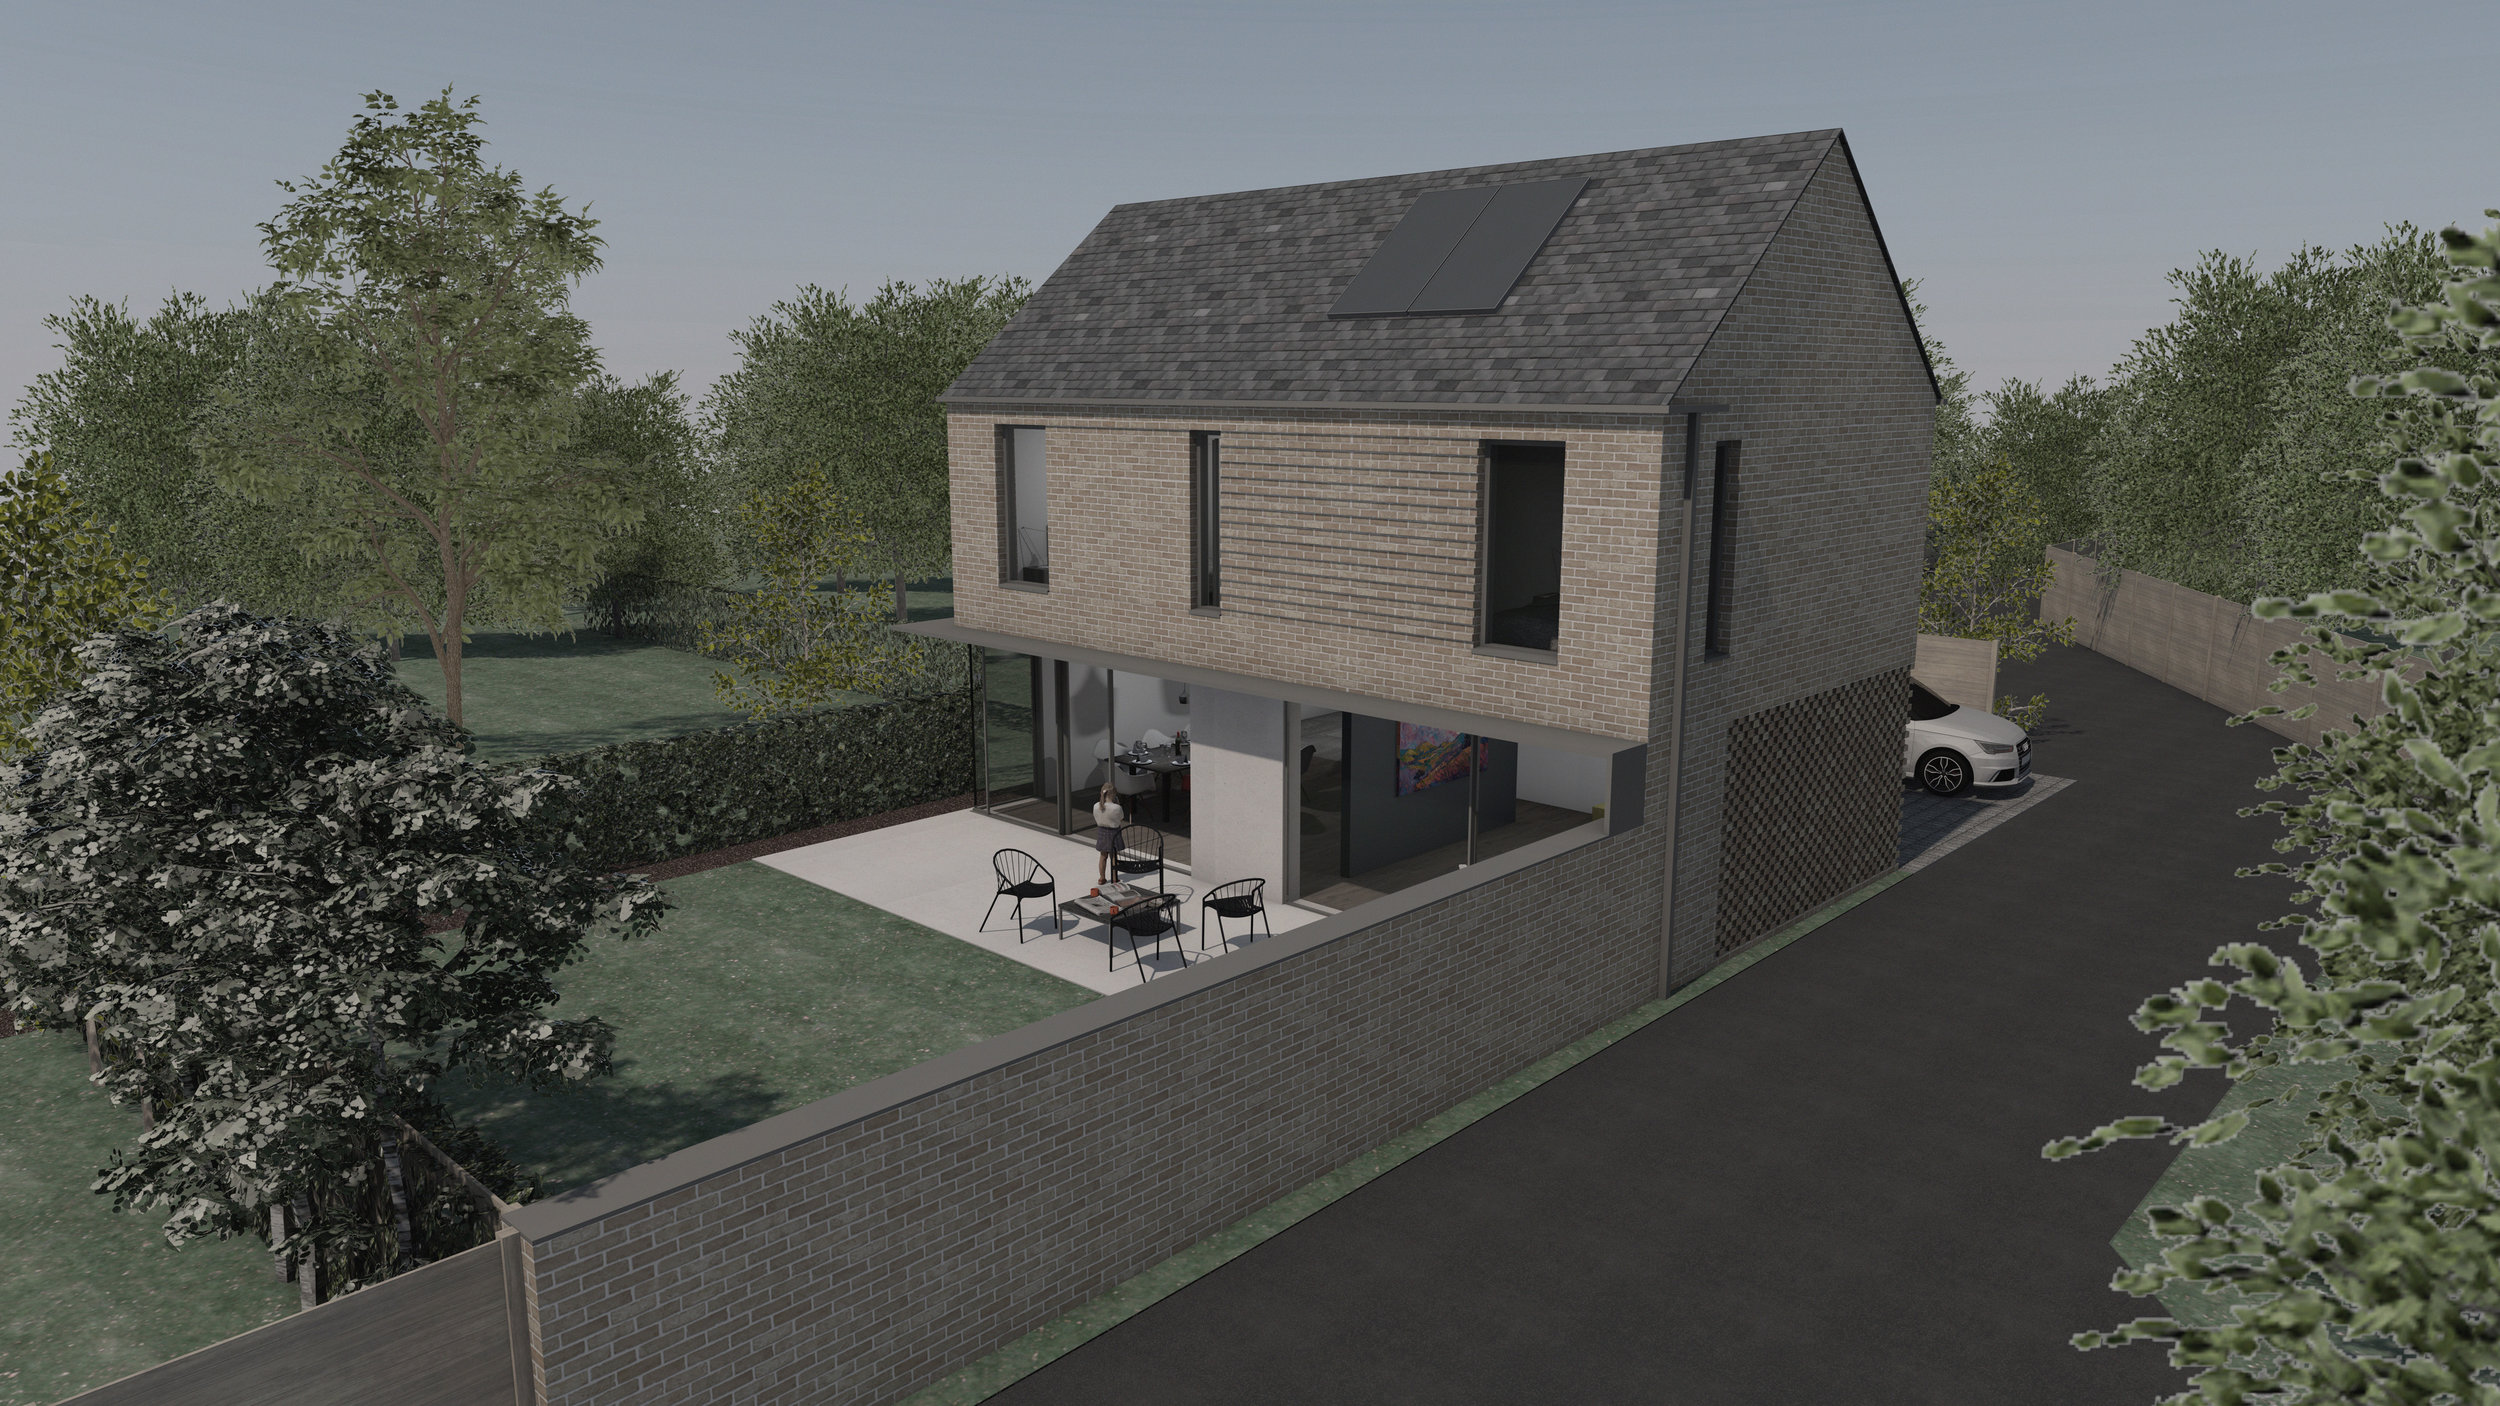 1 Westfield Road - PLANNING - Picture3.jpg